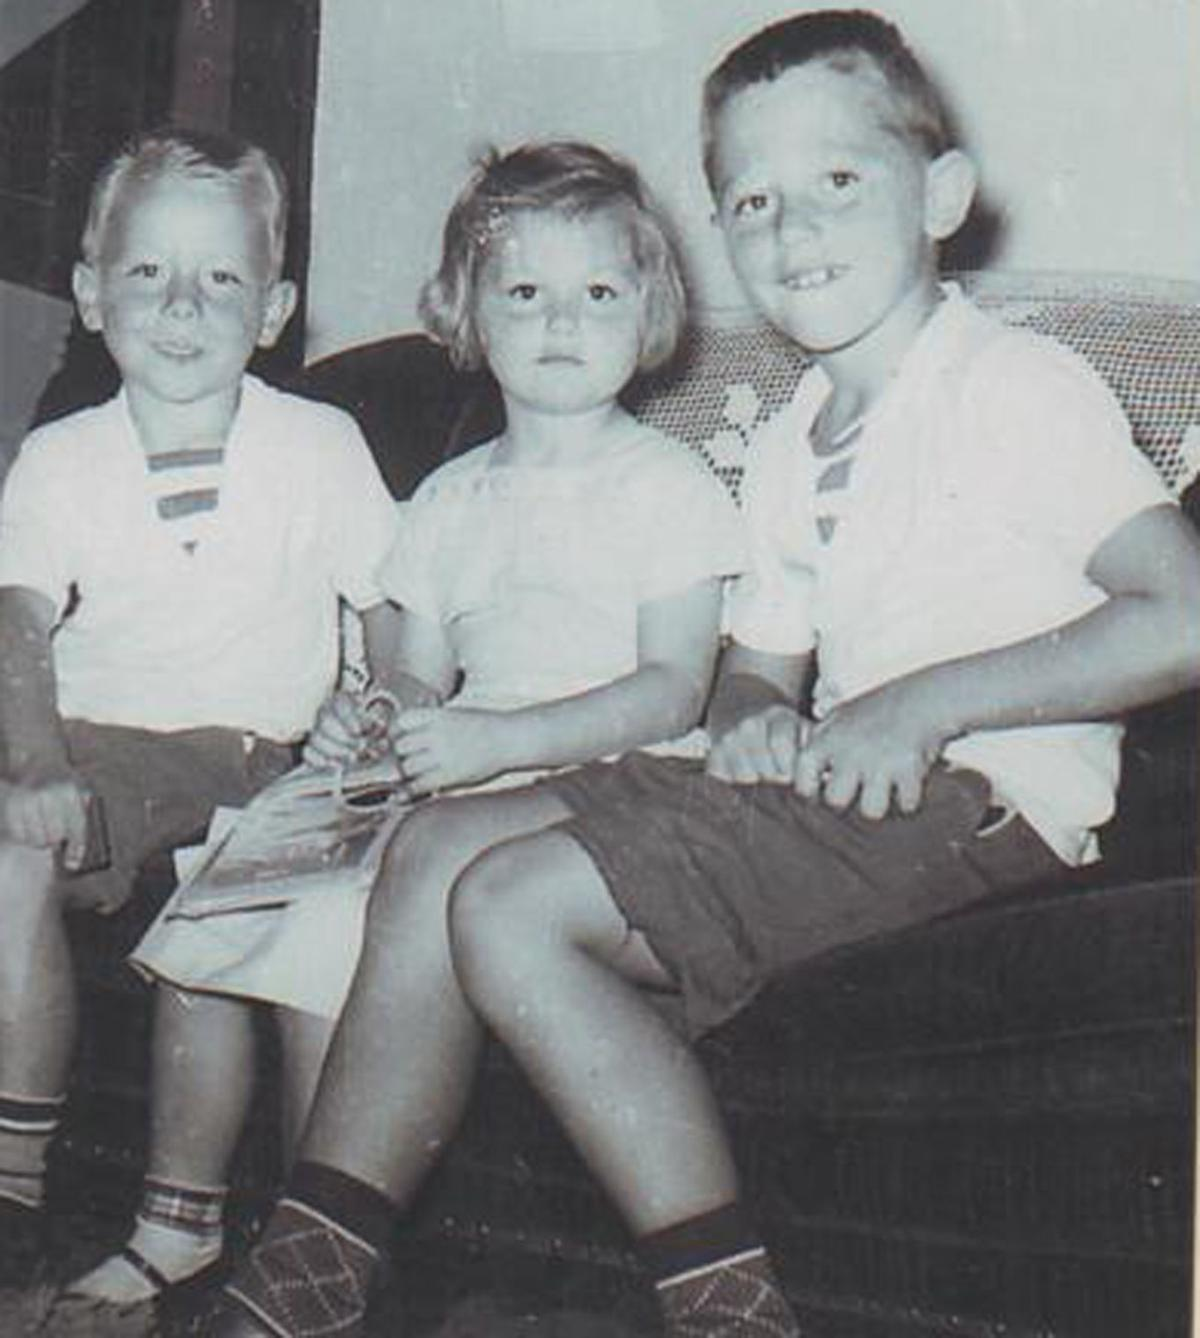 Jim West with brother and sister